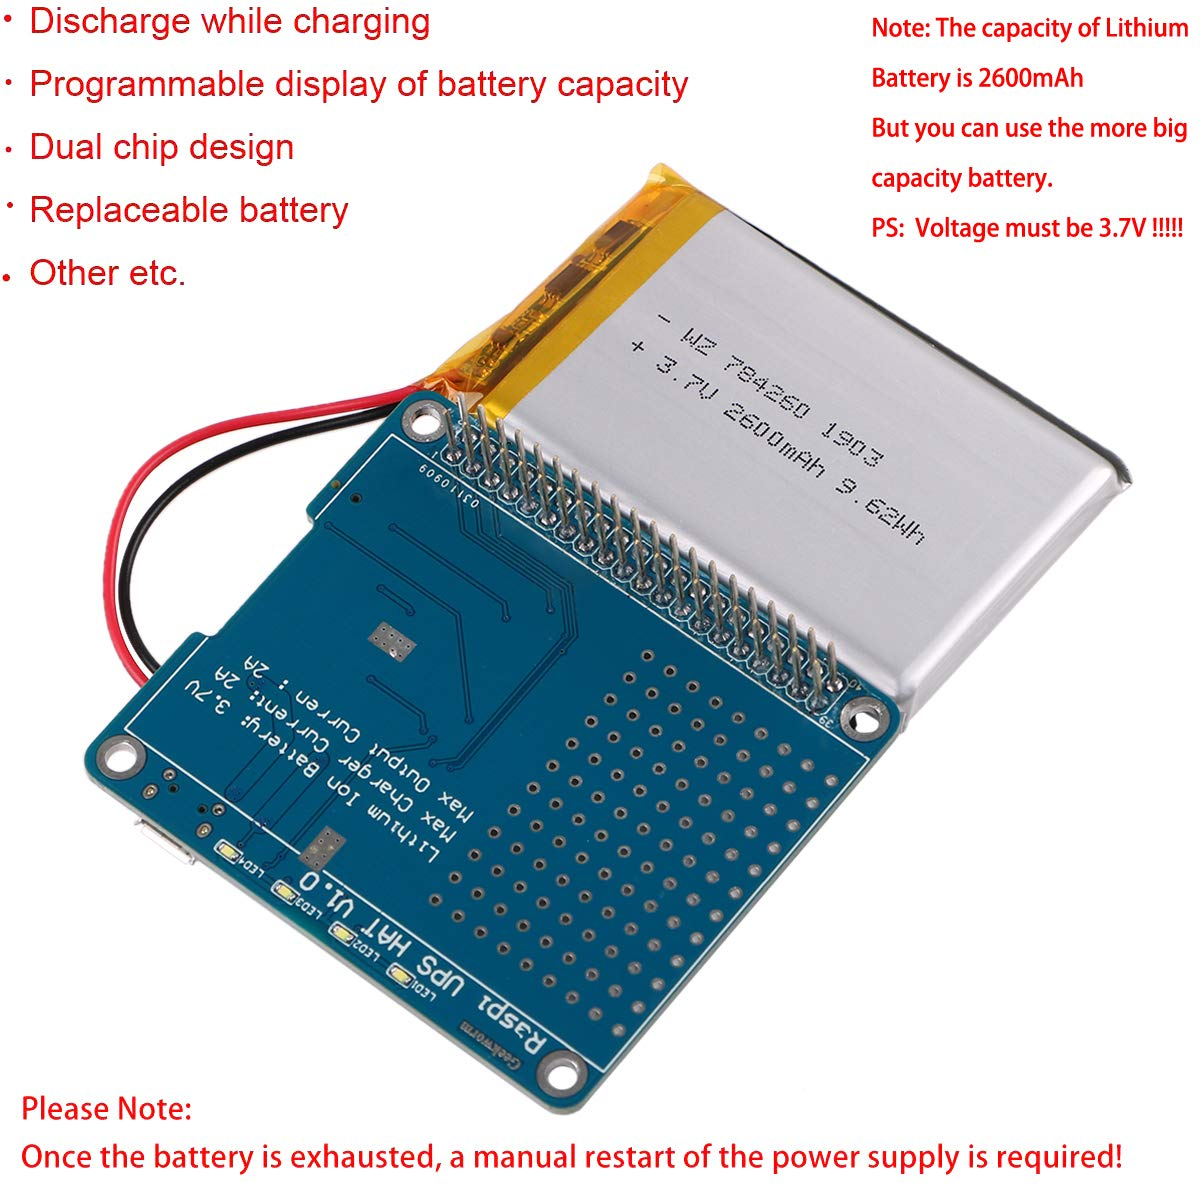 MakerFocus Raspberry Pi Battery Pack UPS HAT Board with 4 LED Power Indicator(2600mAh Battery)